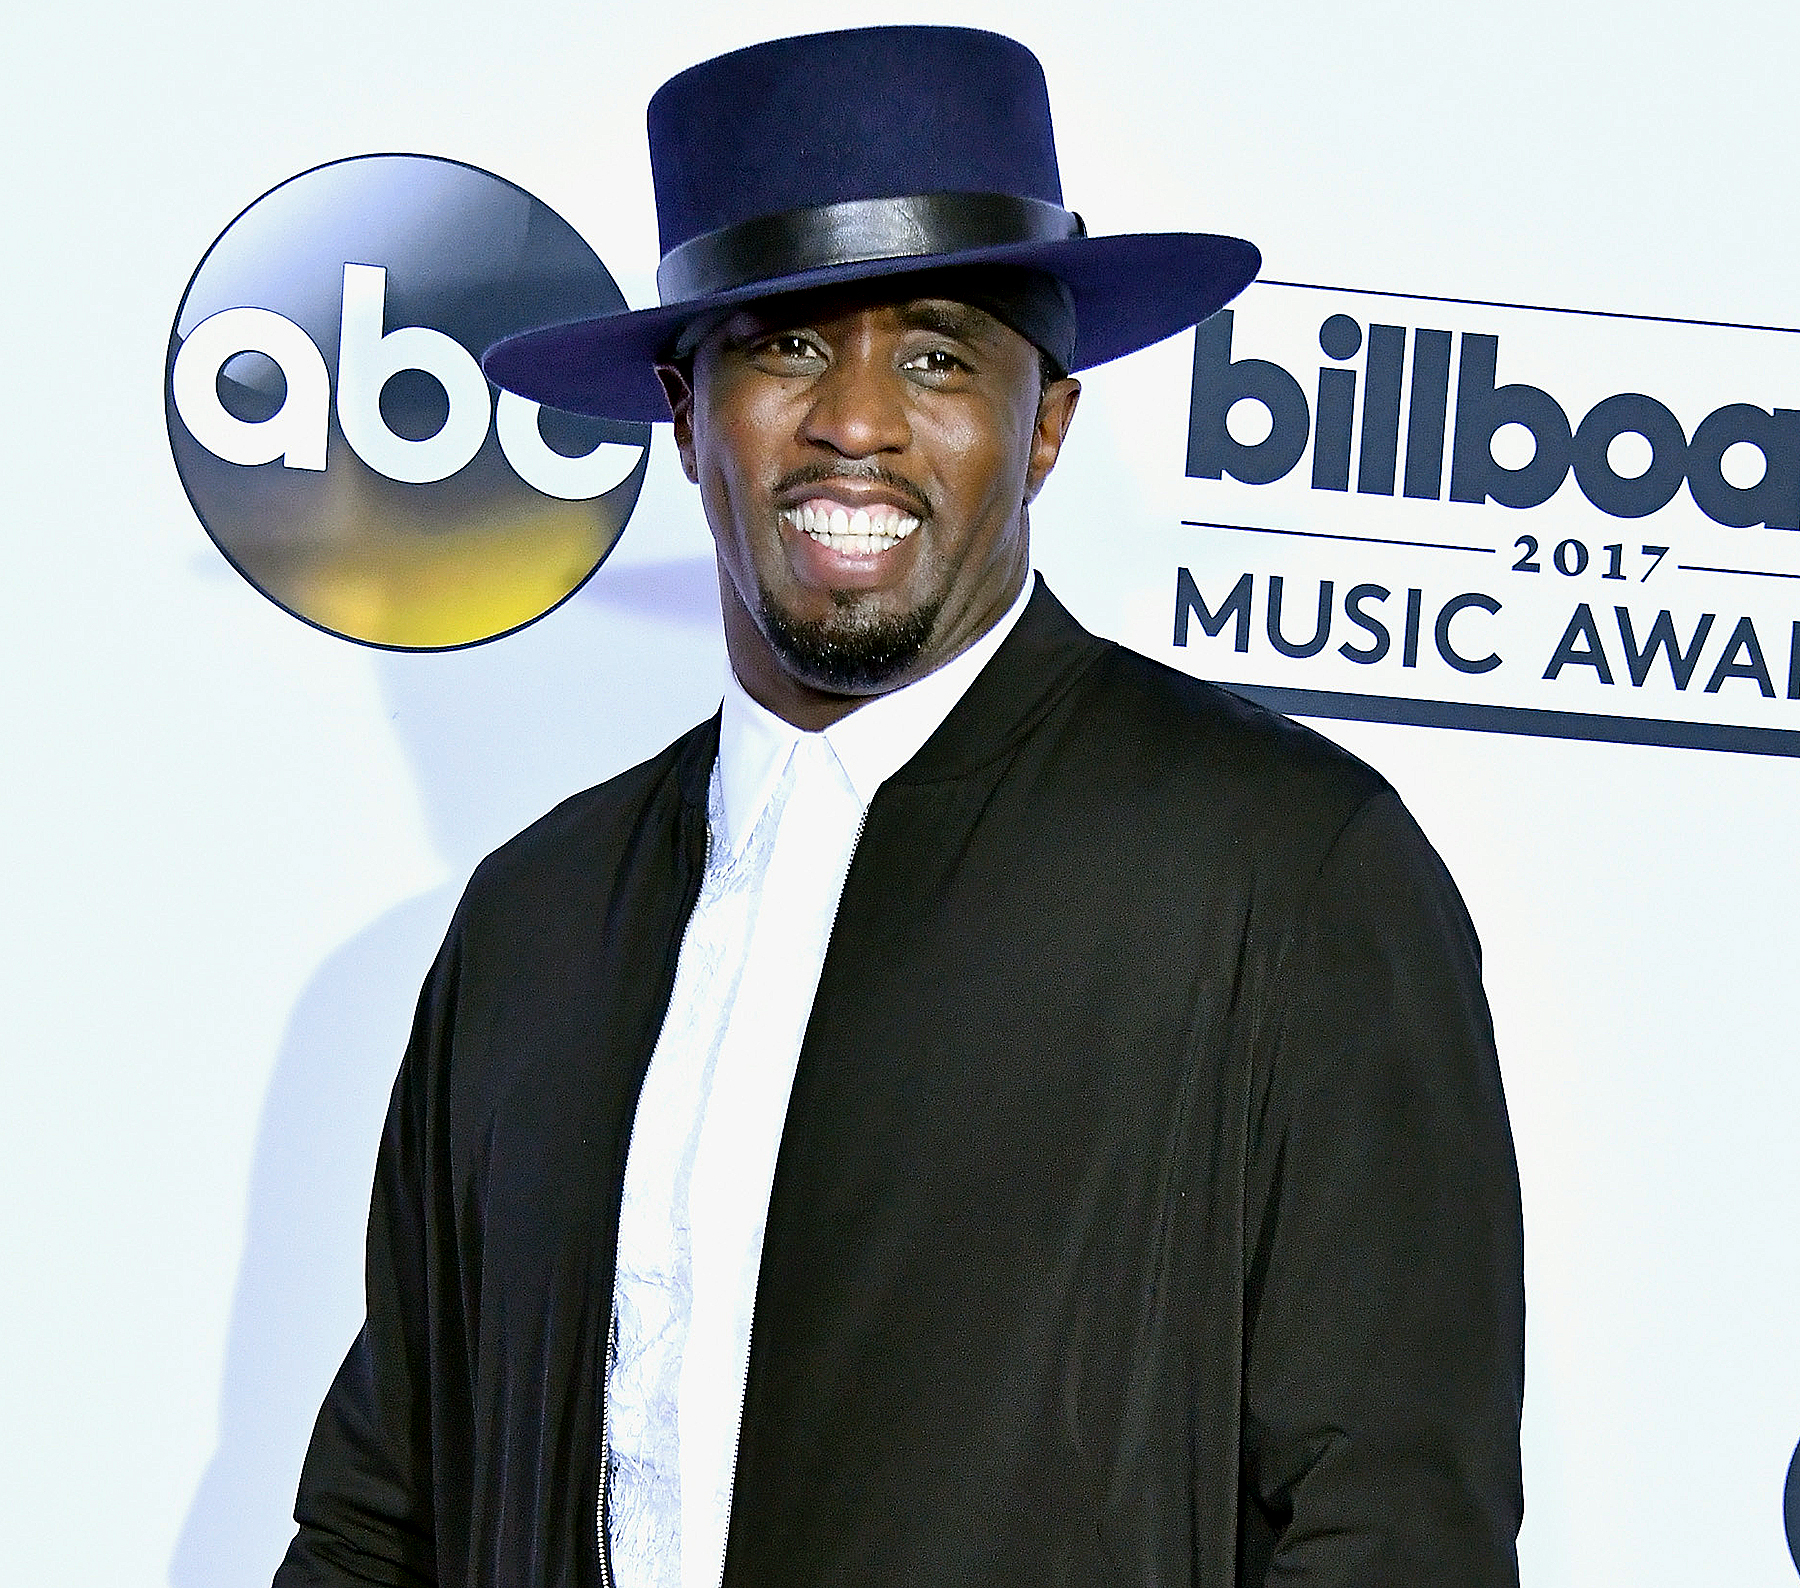 Sean 'Diddy' Combs attends the 2017 Billboard Music Awards at T-Mobile Arena on May 21, 2017 in Las Vegas, Nevada.